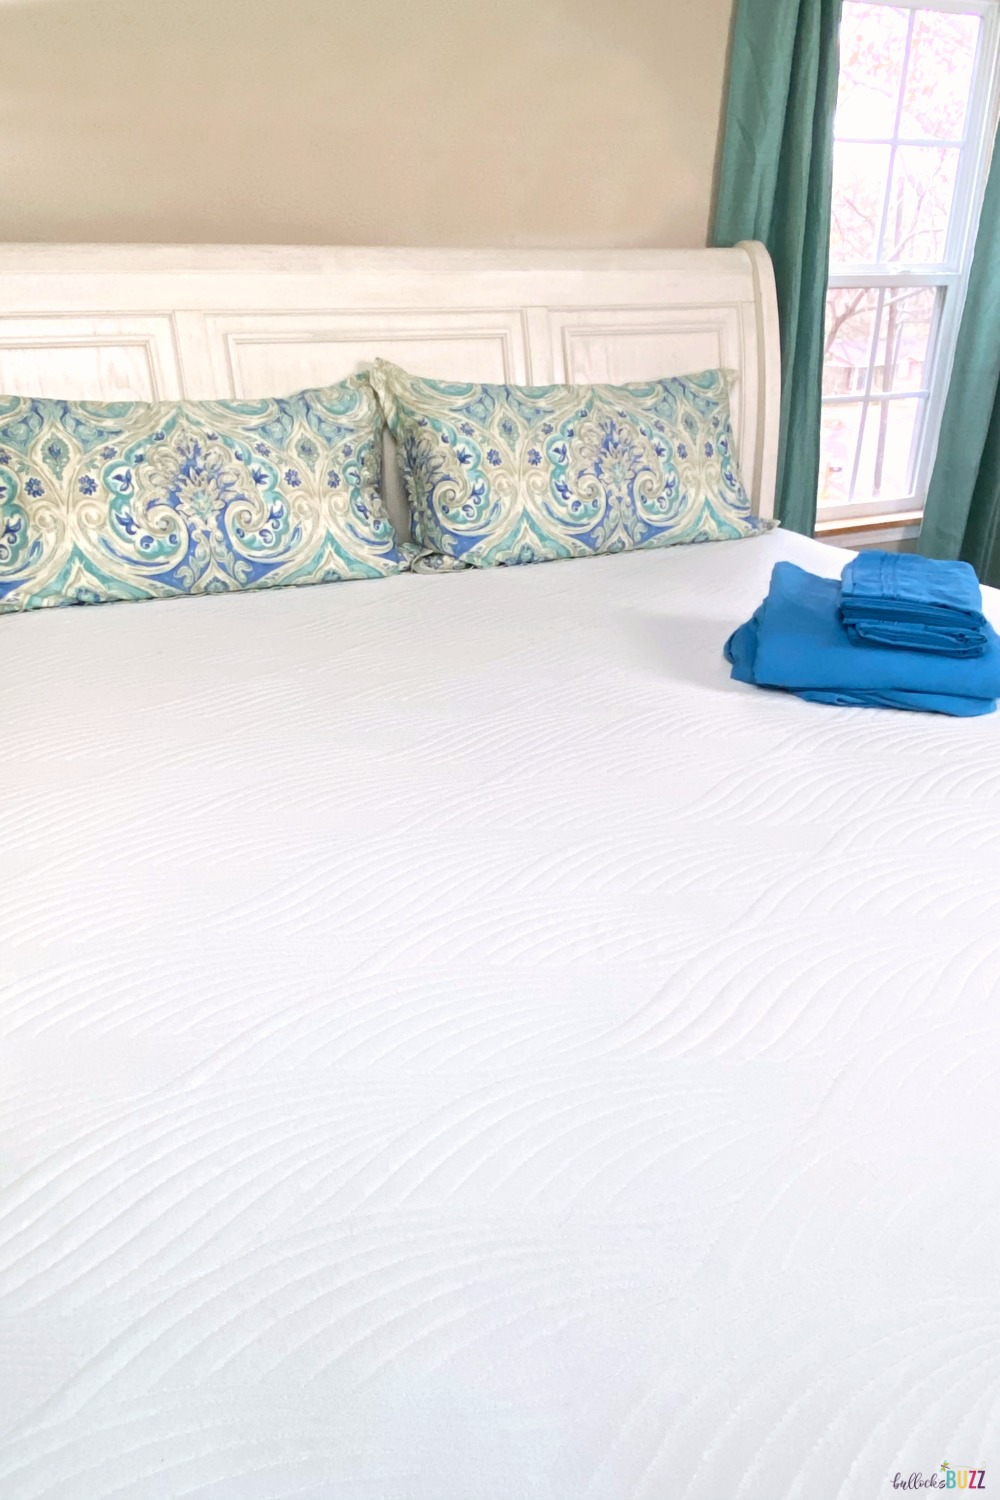 Sleep better with the ultra soft and plush Nest Bedding Cooling Mattress Topper